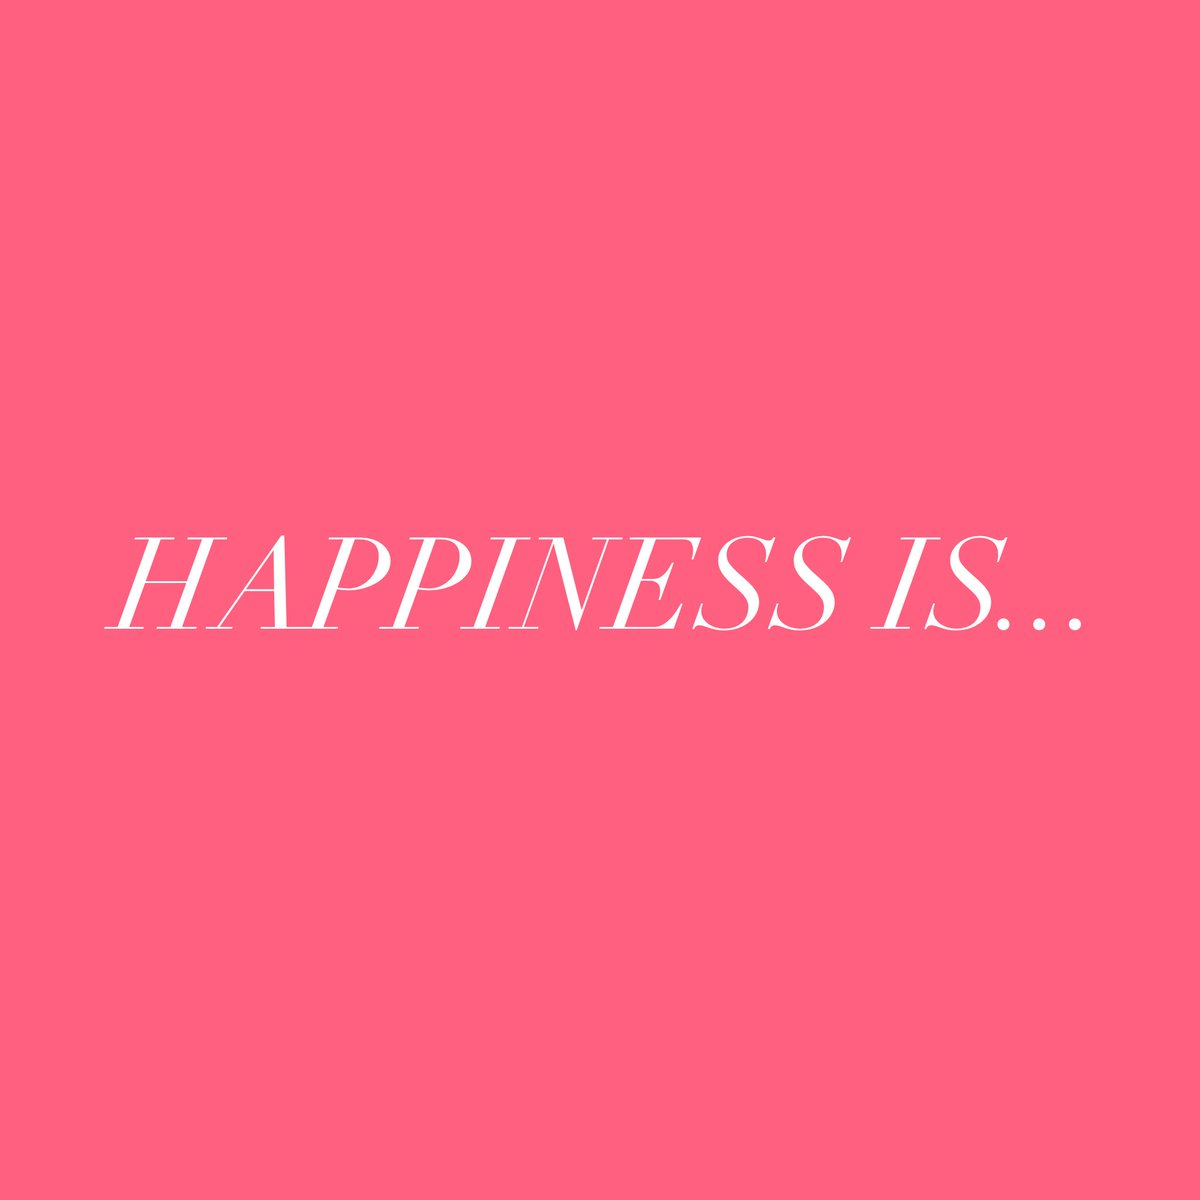 What does happiness mean to you? Share it with us!! Comment down below or make your own post and tag us. We would LOVE to hear from you!!☺️